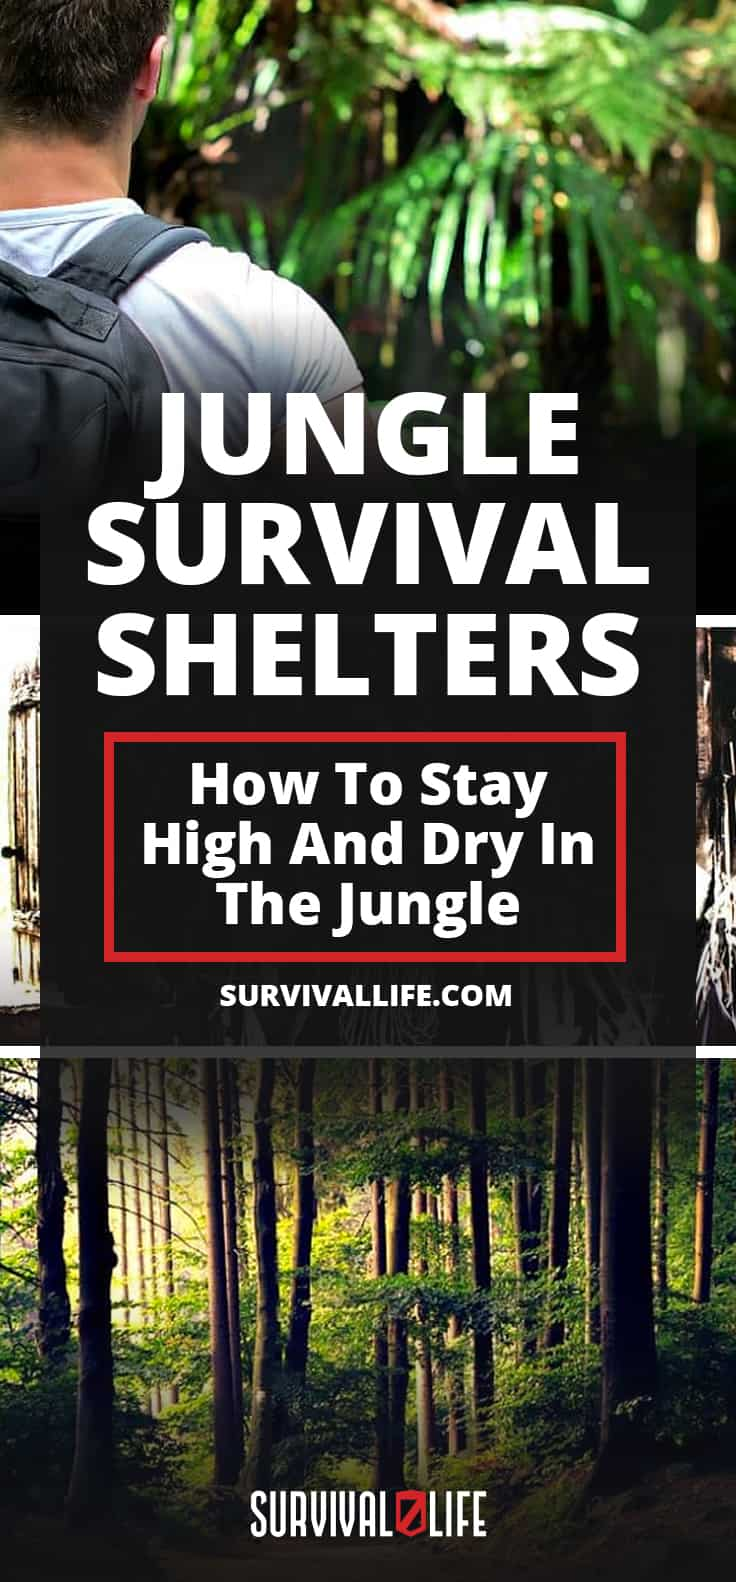 Jungle Survival Shelters | How To Stay High And Dry In The Jungle